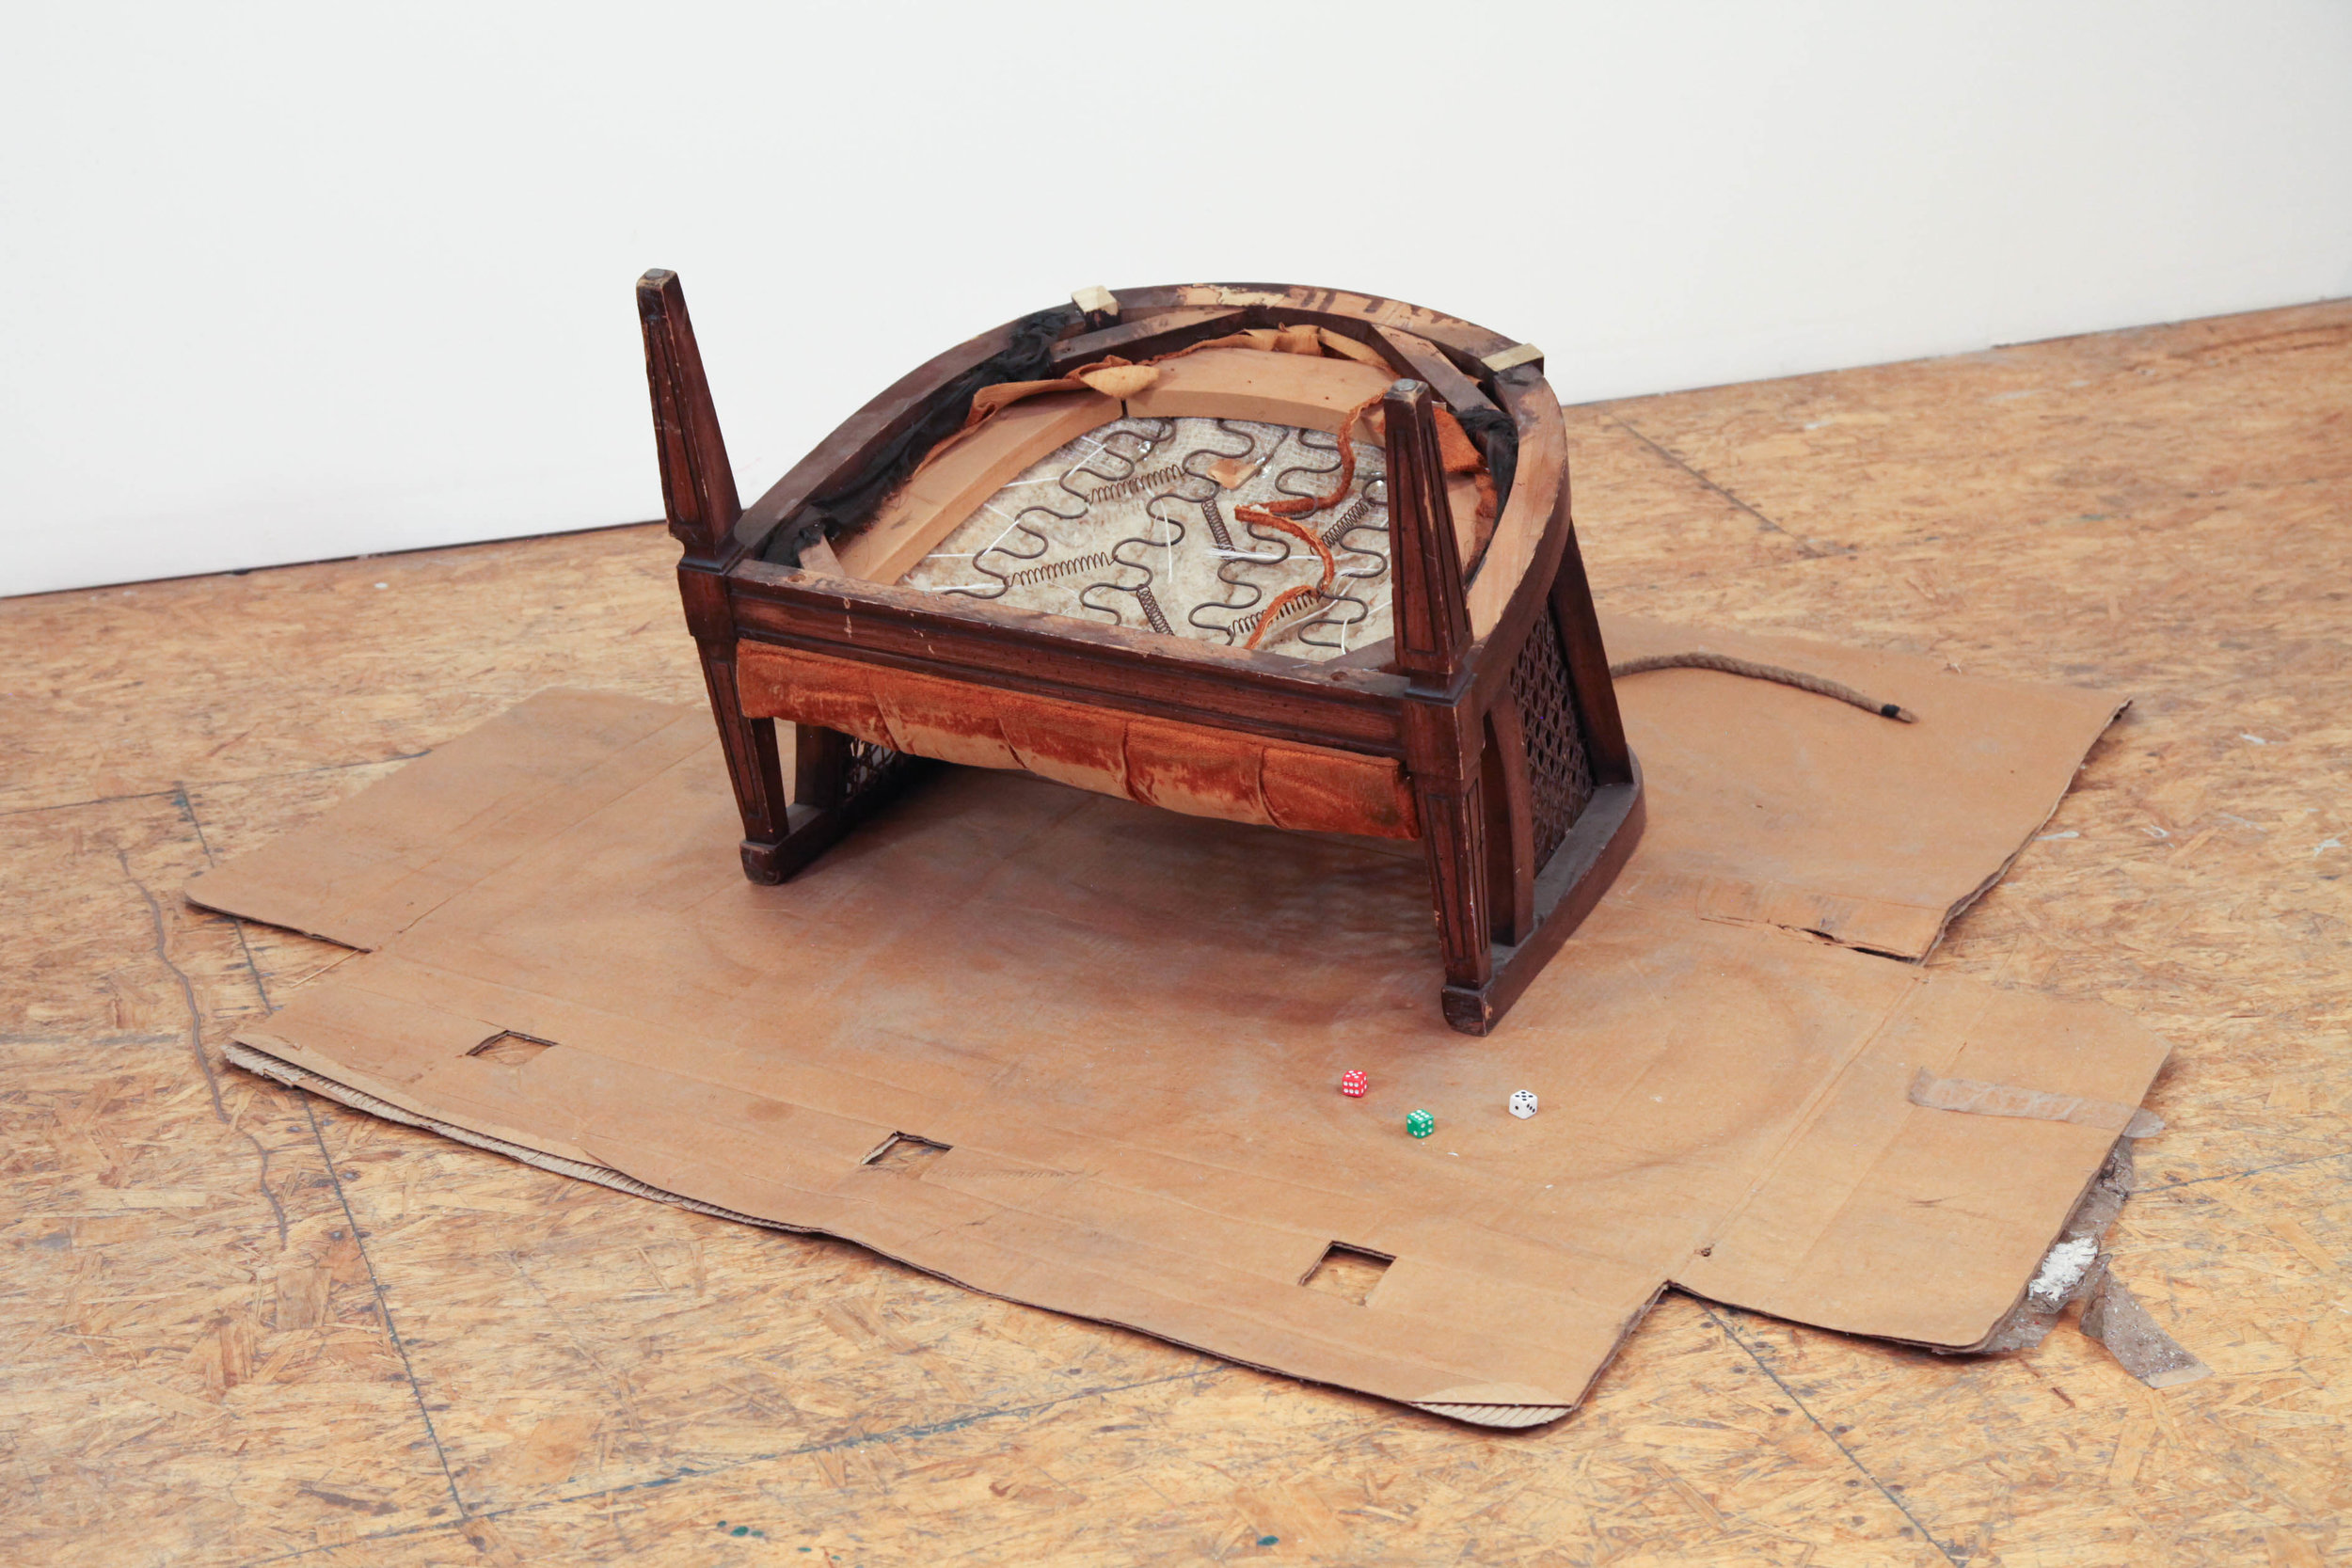 Daniel Gaitor-Lomack  Bull in Space (Ginger Snap), 2017 antique chair, lint roller, cardboard, dice, camouflage mesh fabric, and acrylic paint 23 x 60 x 55 in.